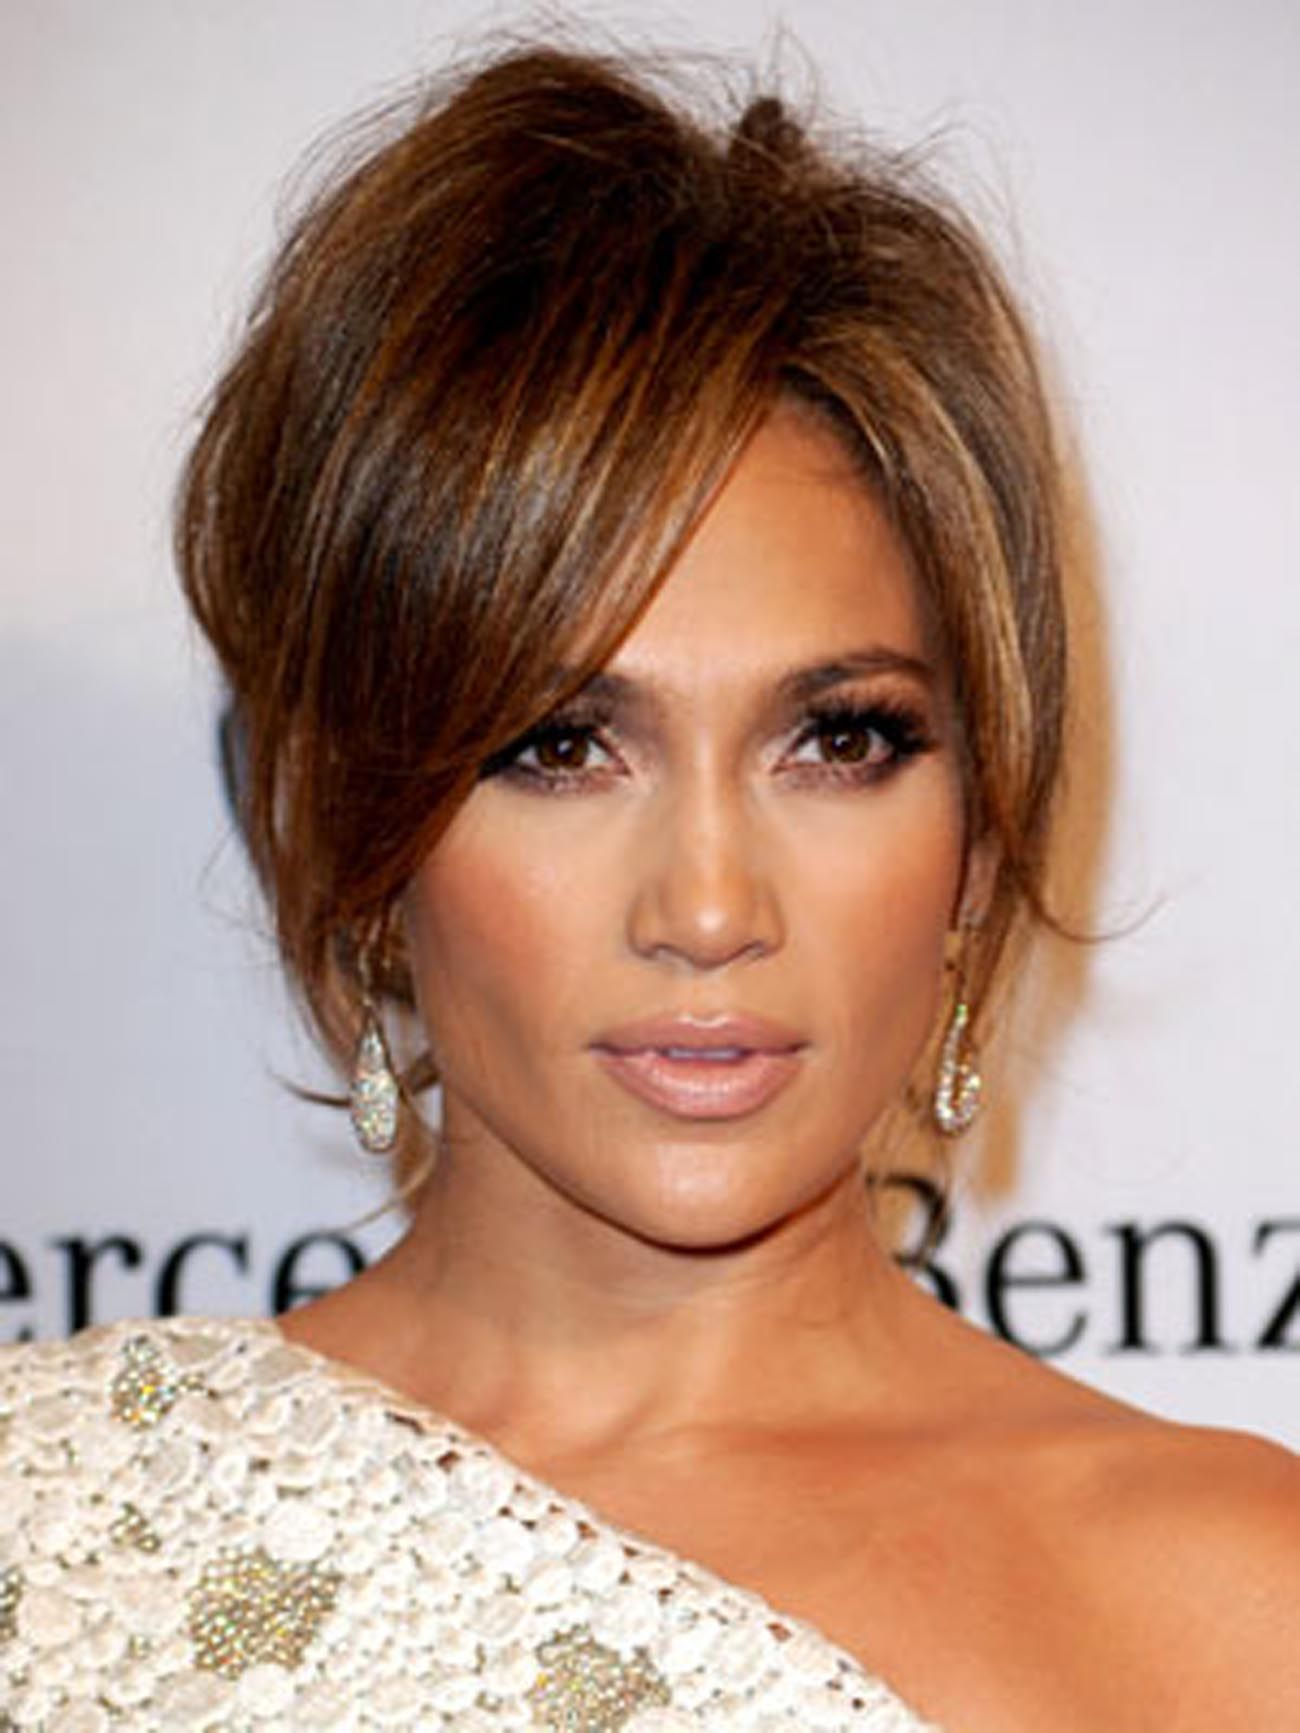 تسريحات شعر ناعمه Jennifer Lopez Hair Hair Styles Hairstyles With Bangs